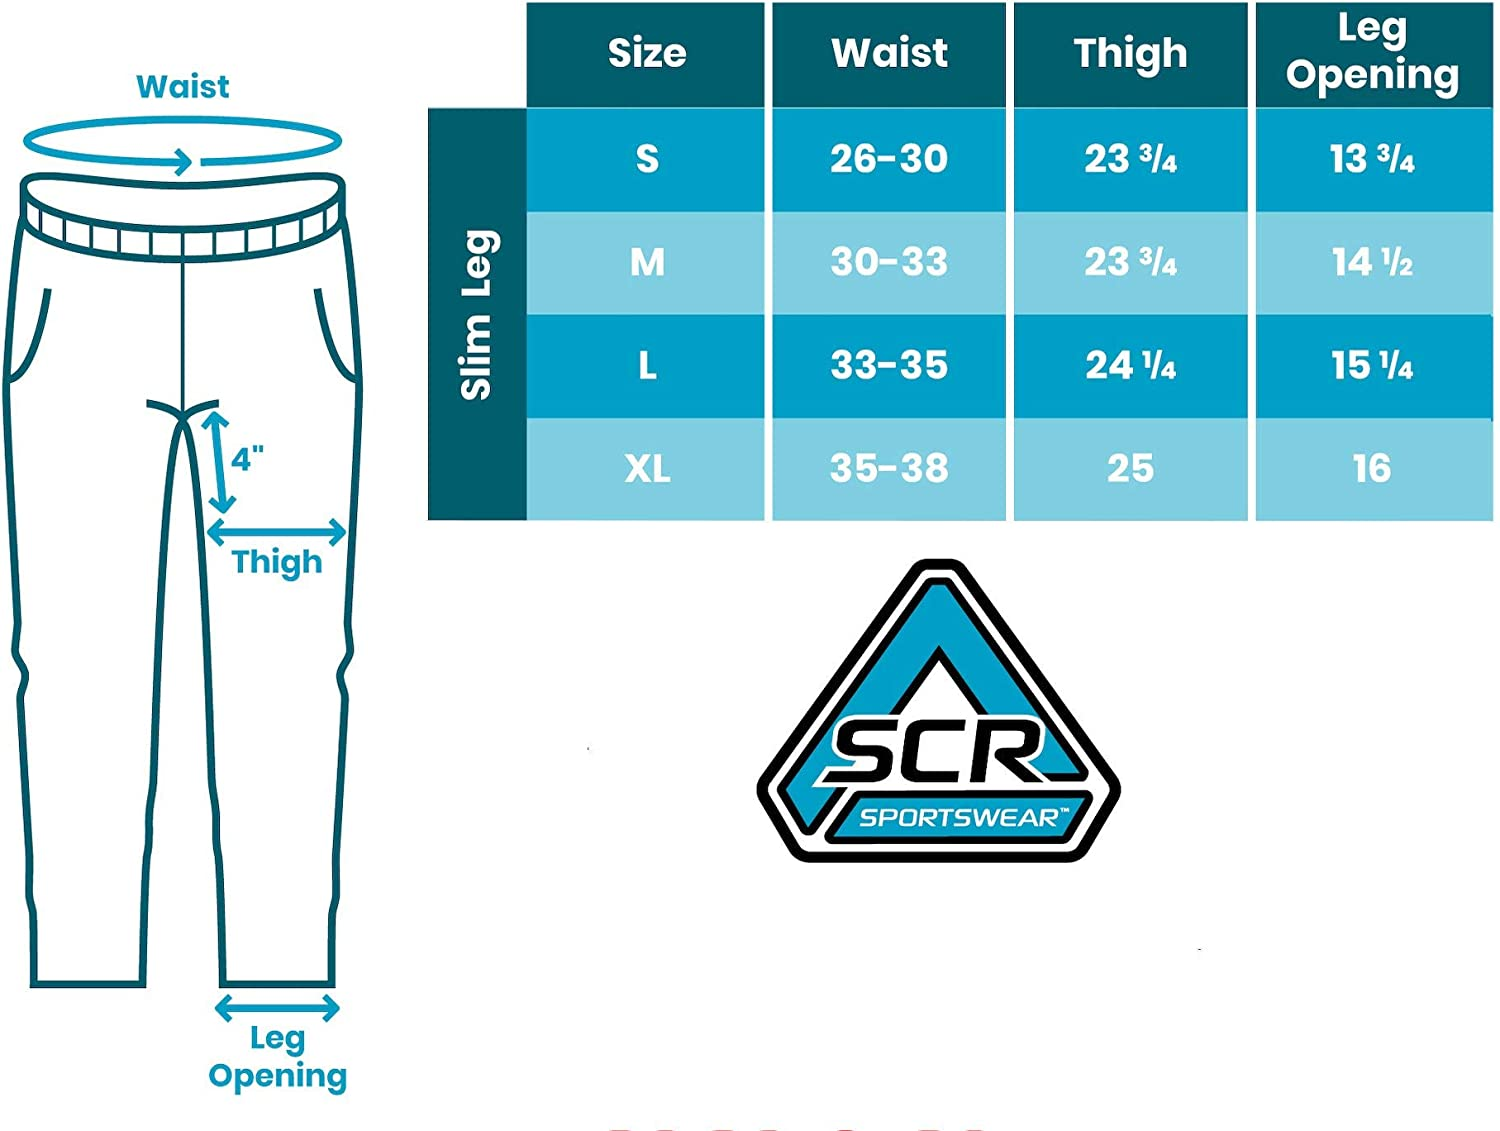 SCR SPORTSWEAR Mens Soccer Track Training Pants Athletic Sweatpants with Zipper Pockets Black Heather Grey Short Long Inseam 31W x 33L, SCR Gray-K536